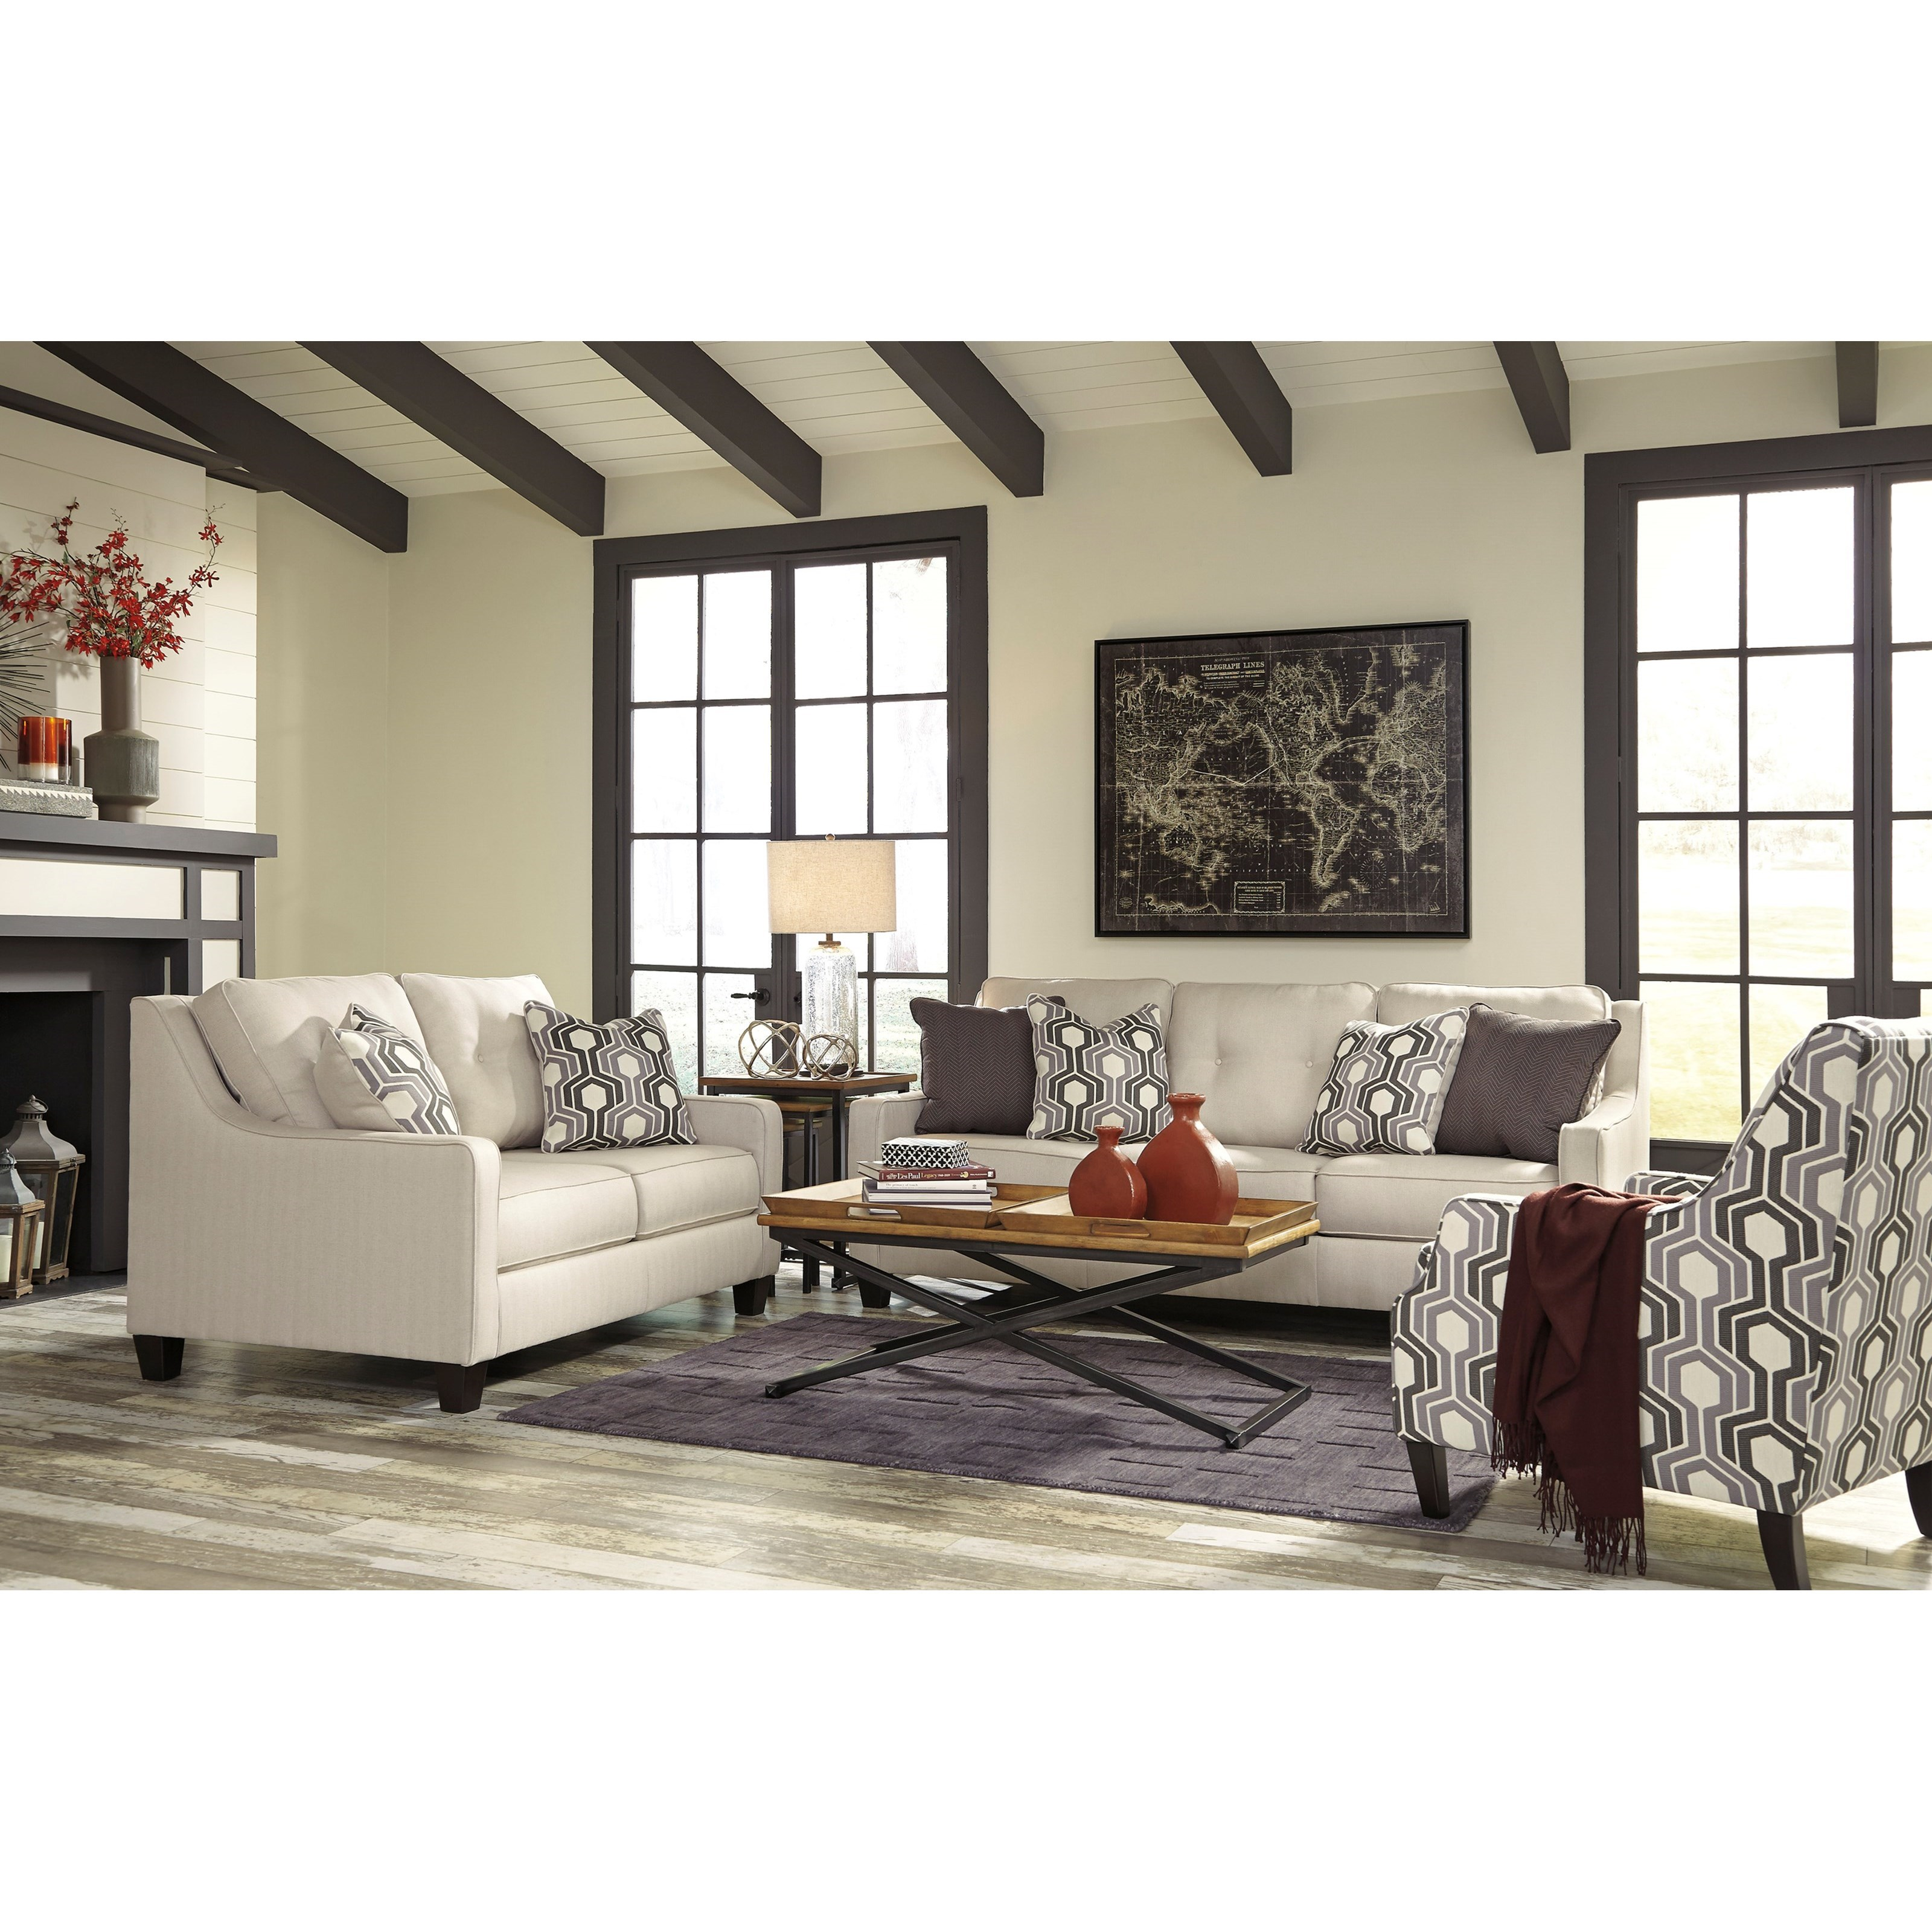 Ashley/Benchcraft Guillerno Stationary Living Room Group - Item Number: 71801 Living Room Group 3